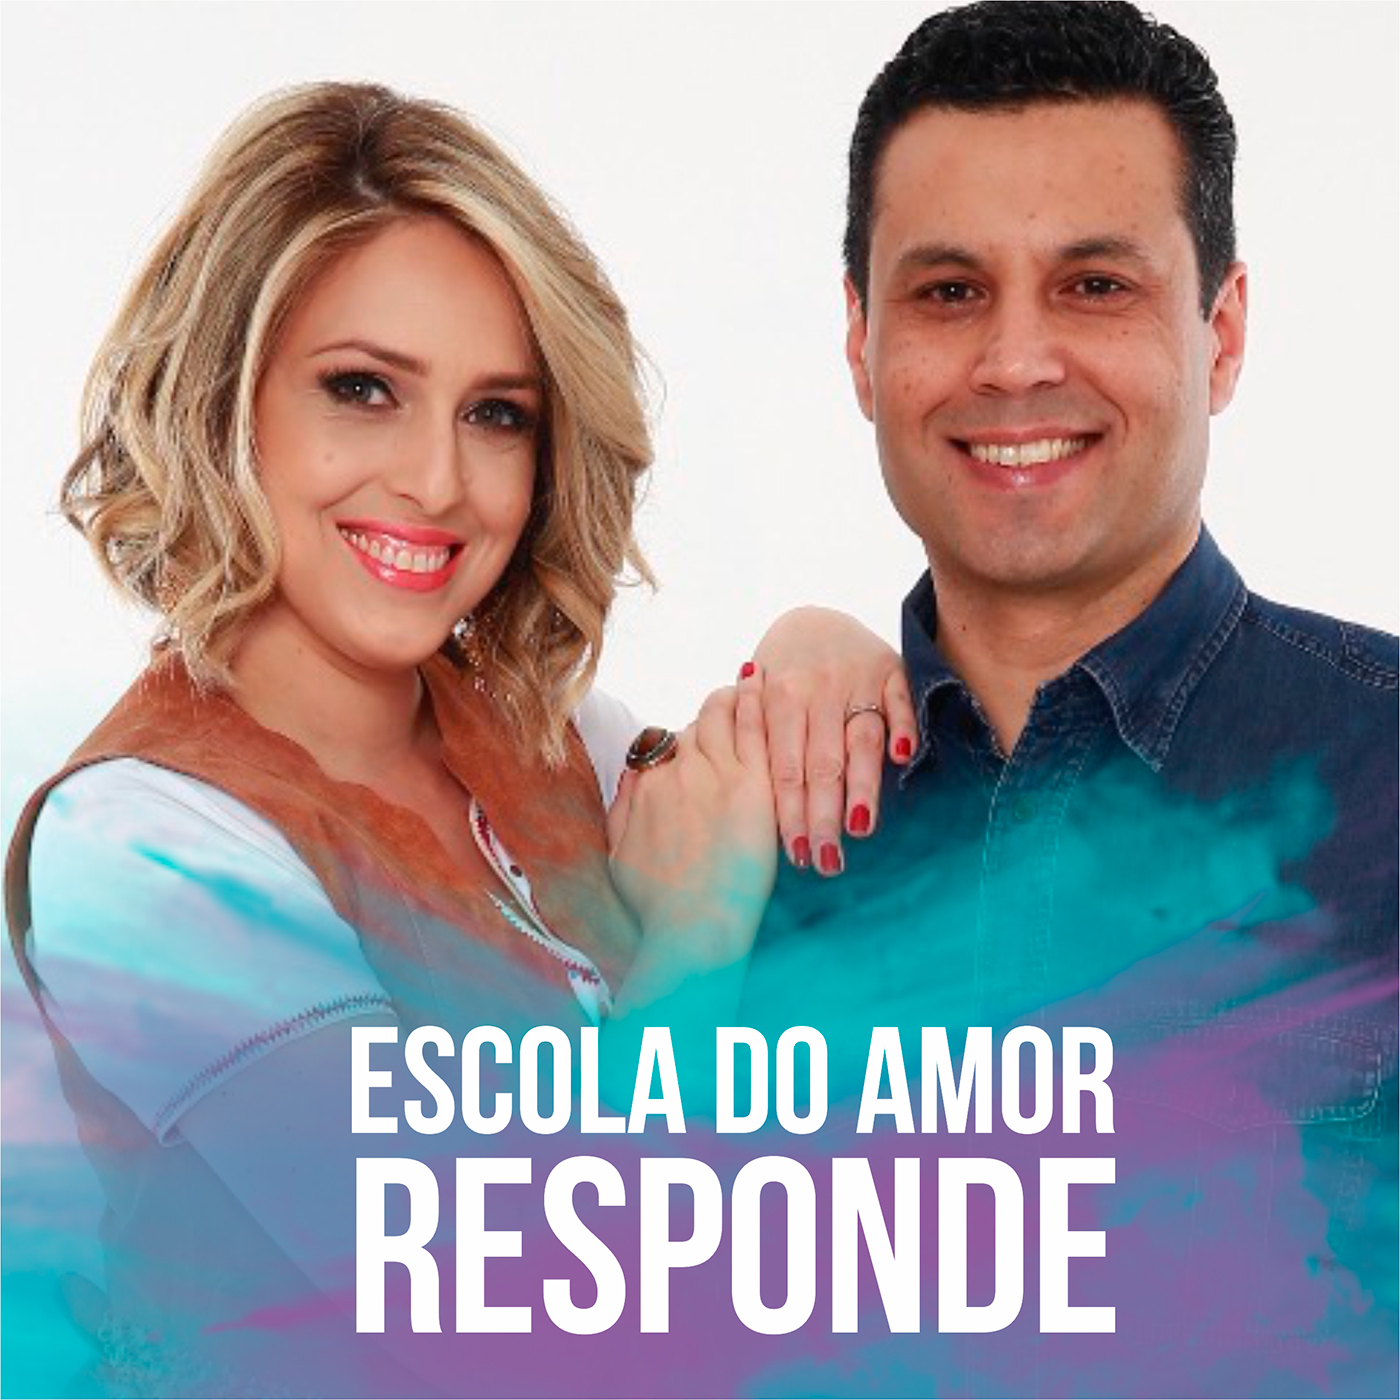 984# Escola do Amor Responde (no ar 23/05/2017)